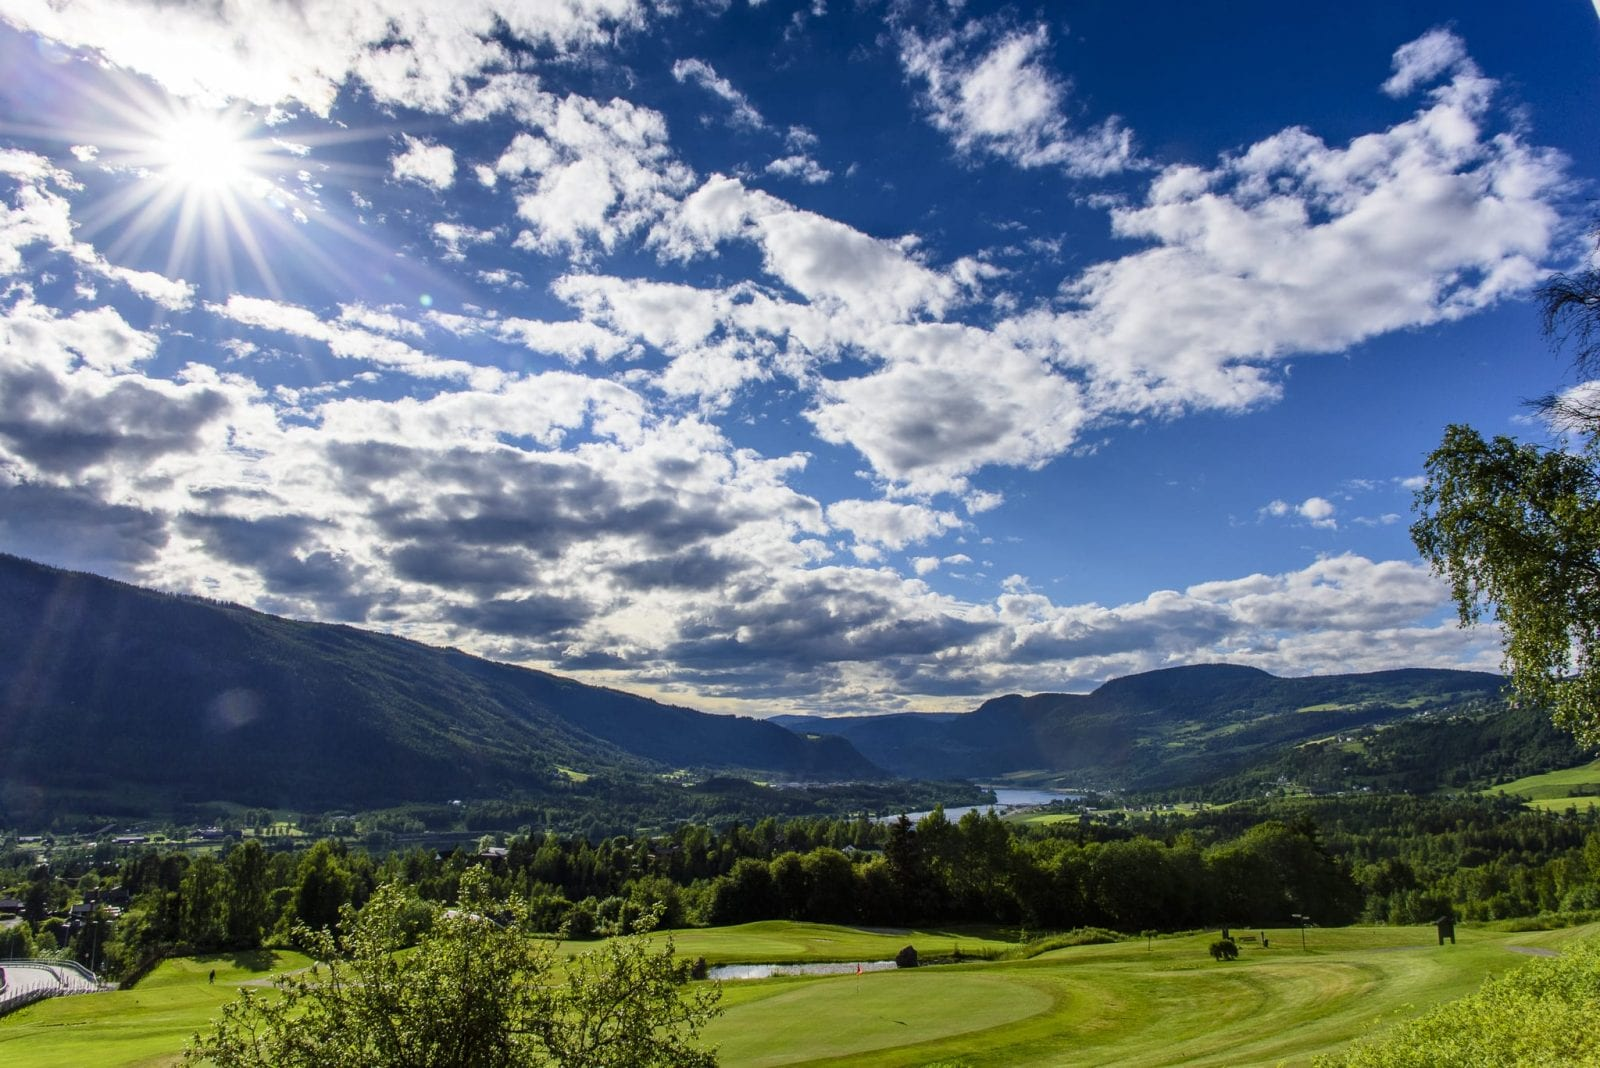 This is a photo shoot of Gudbrandsdalen valley.